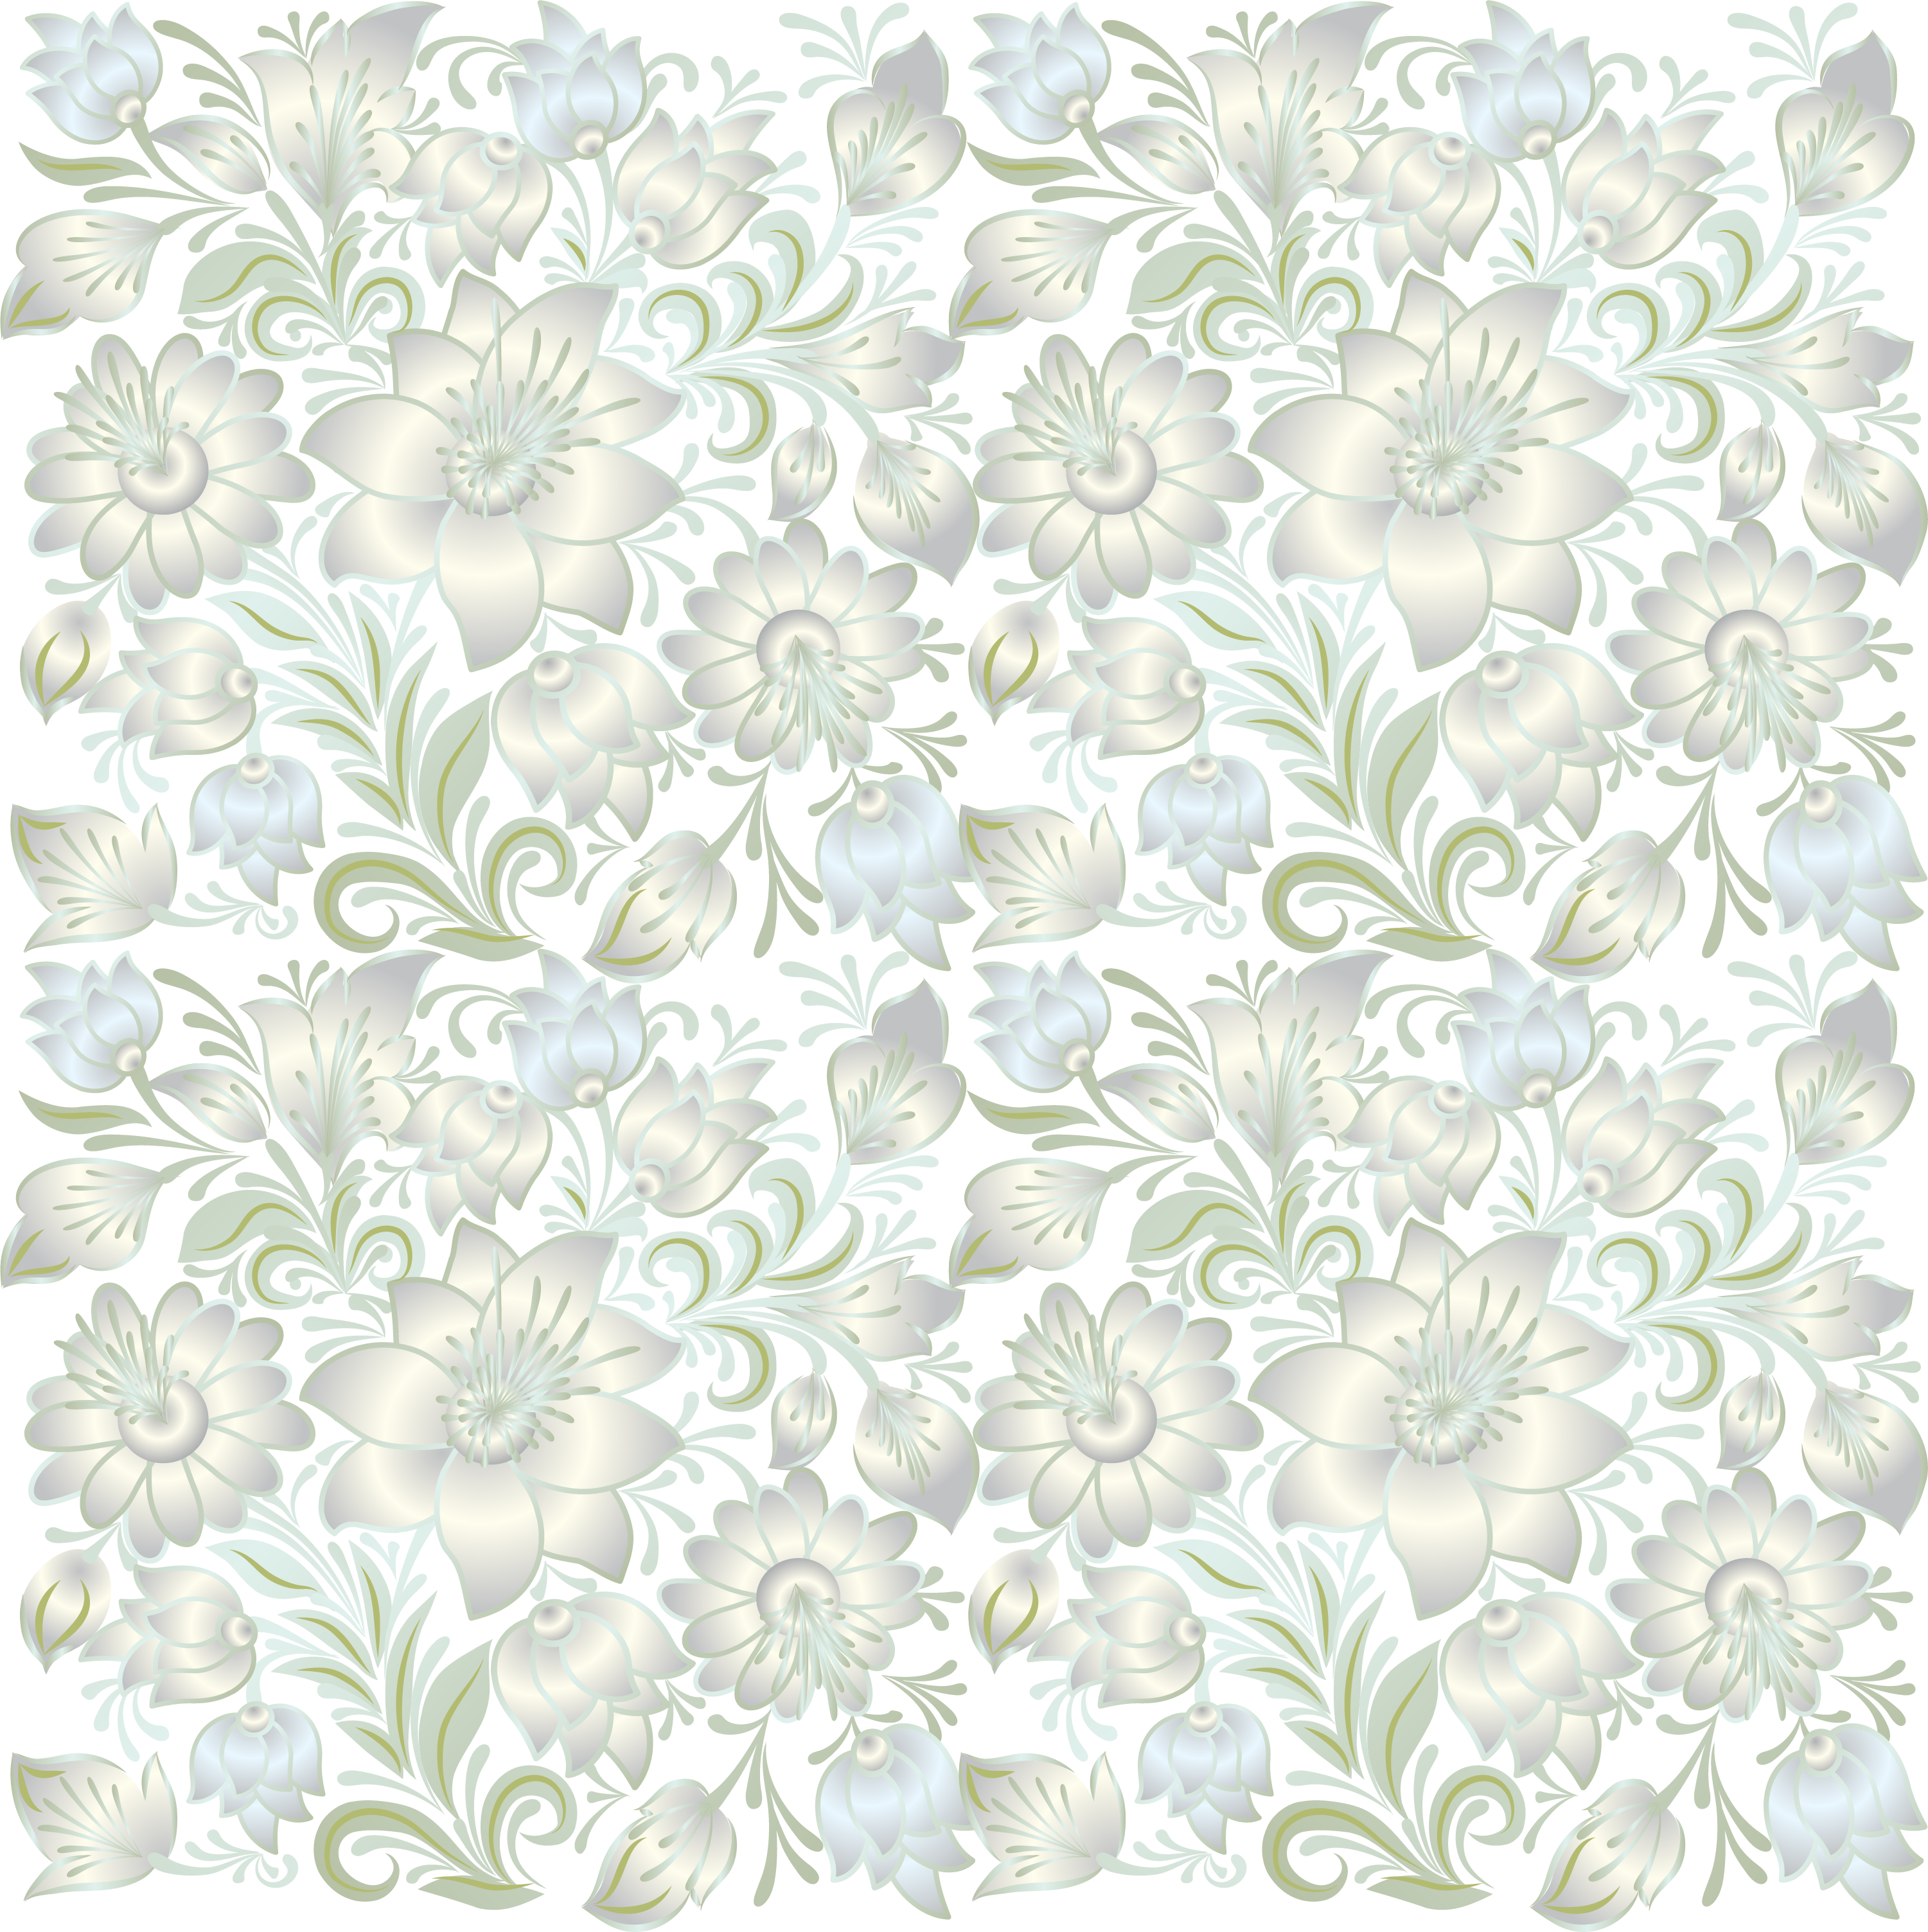 Floral design green lace. Flower texture png